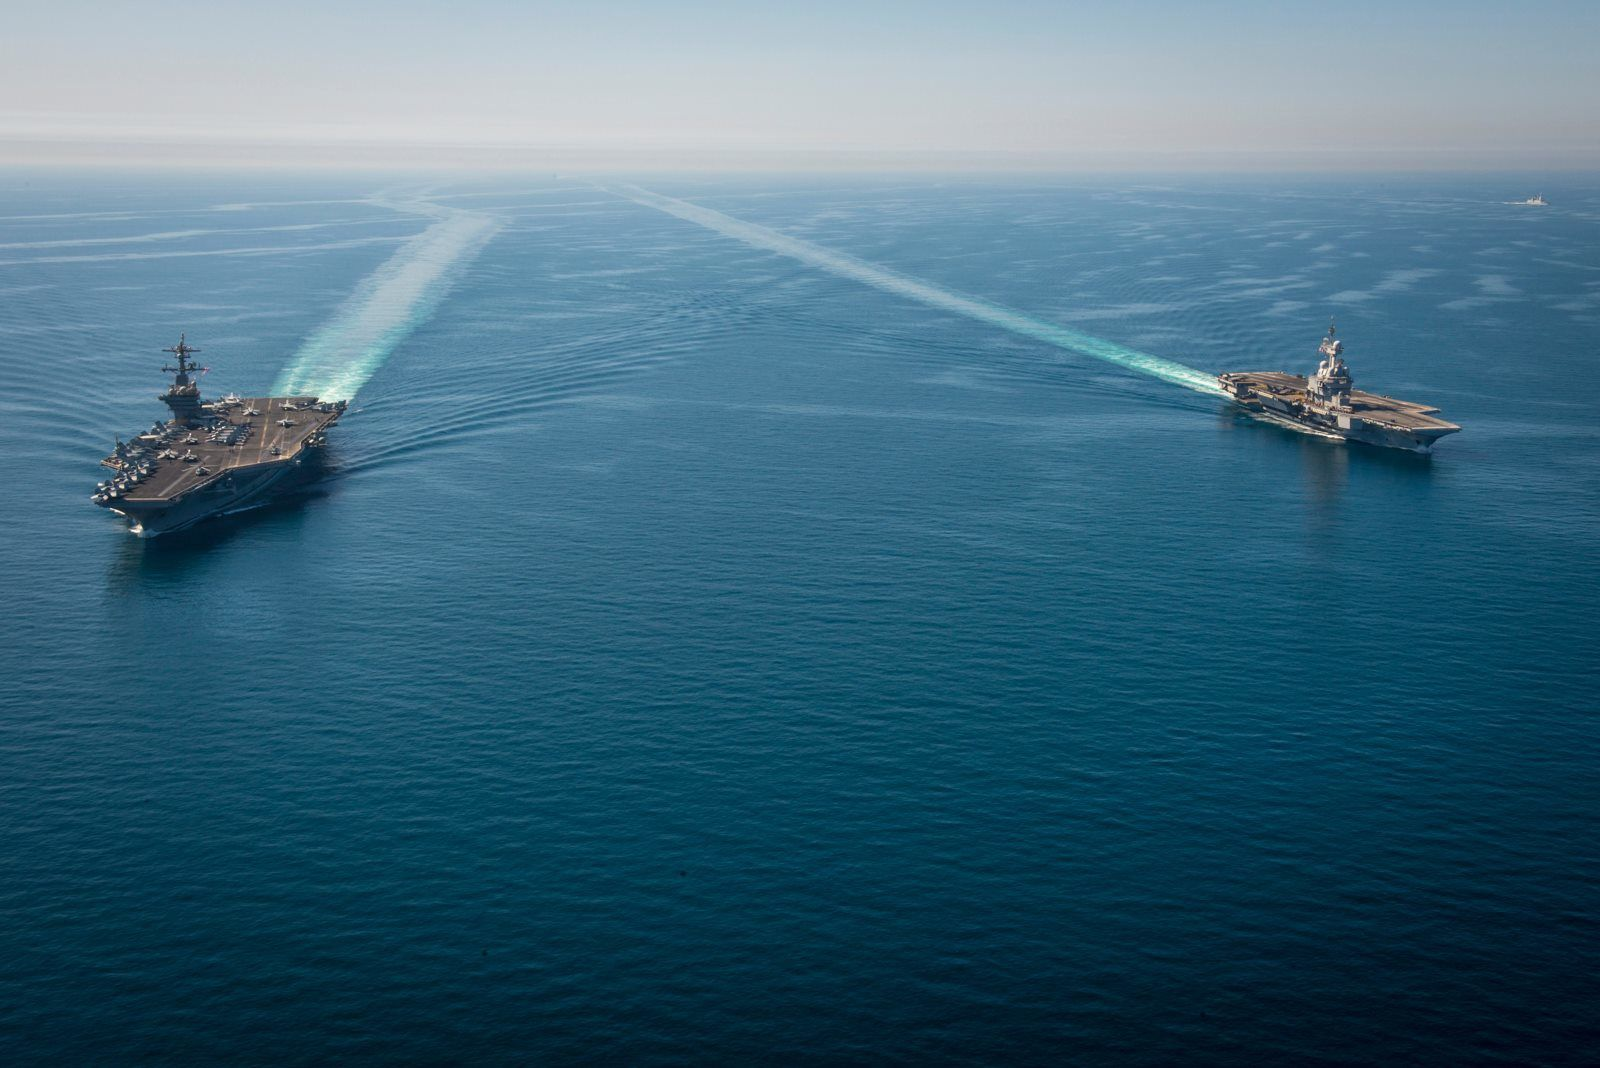 Aircraft carrier USS Carl Vinson and French nuclear aircraft carrier Charles de Gaulle transit the Northern Arabian Gulf